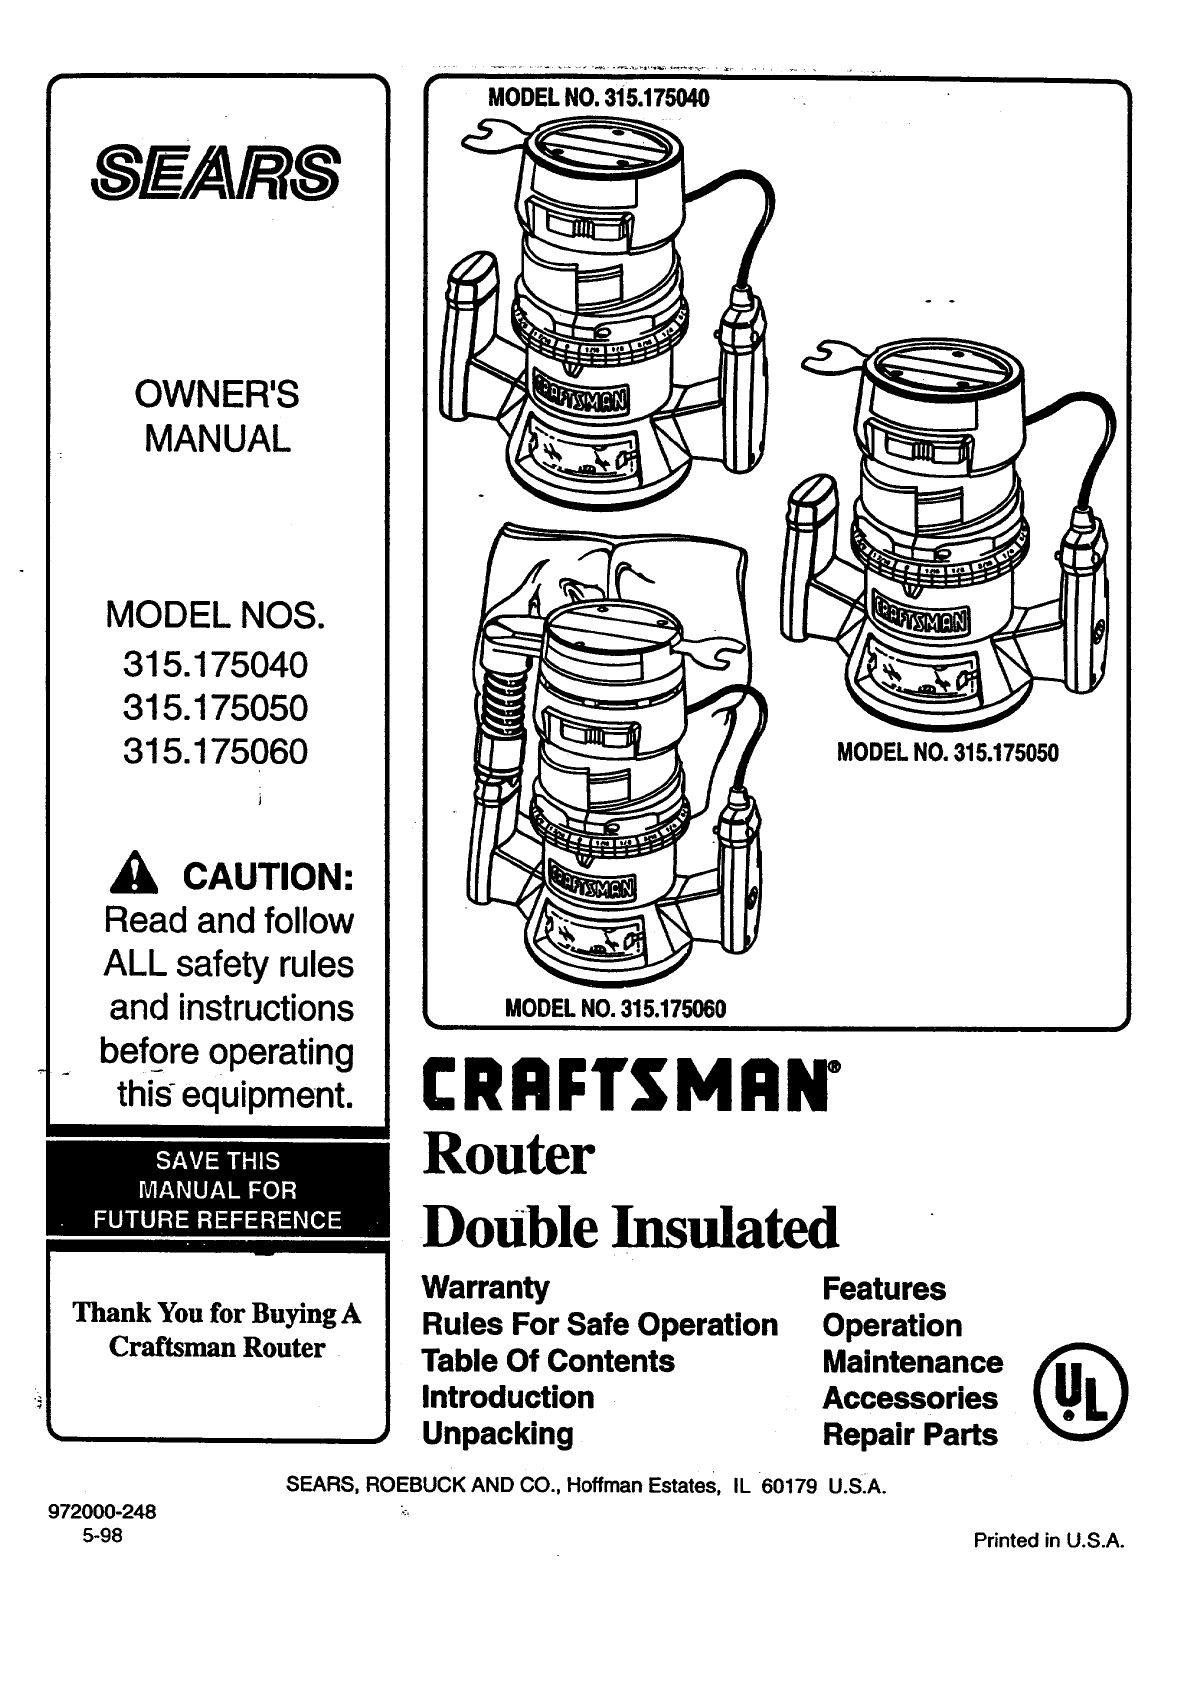 Craftsman User Manual Double Insulated Router